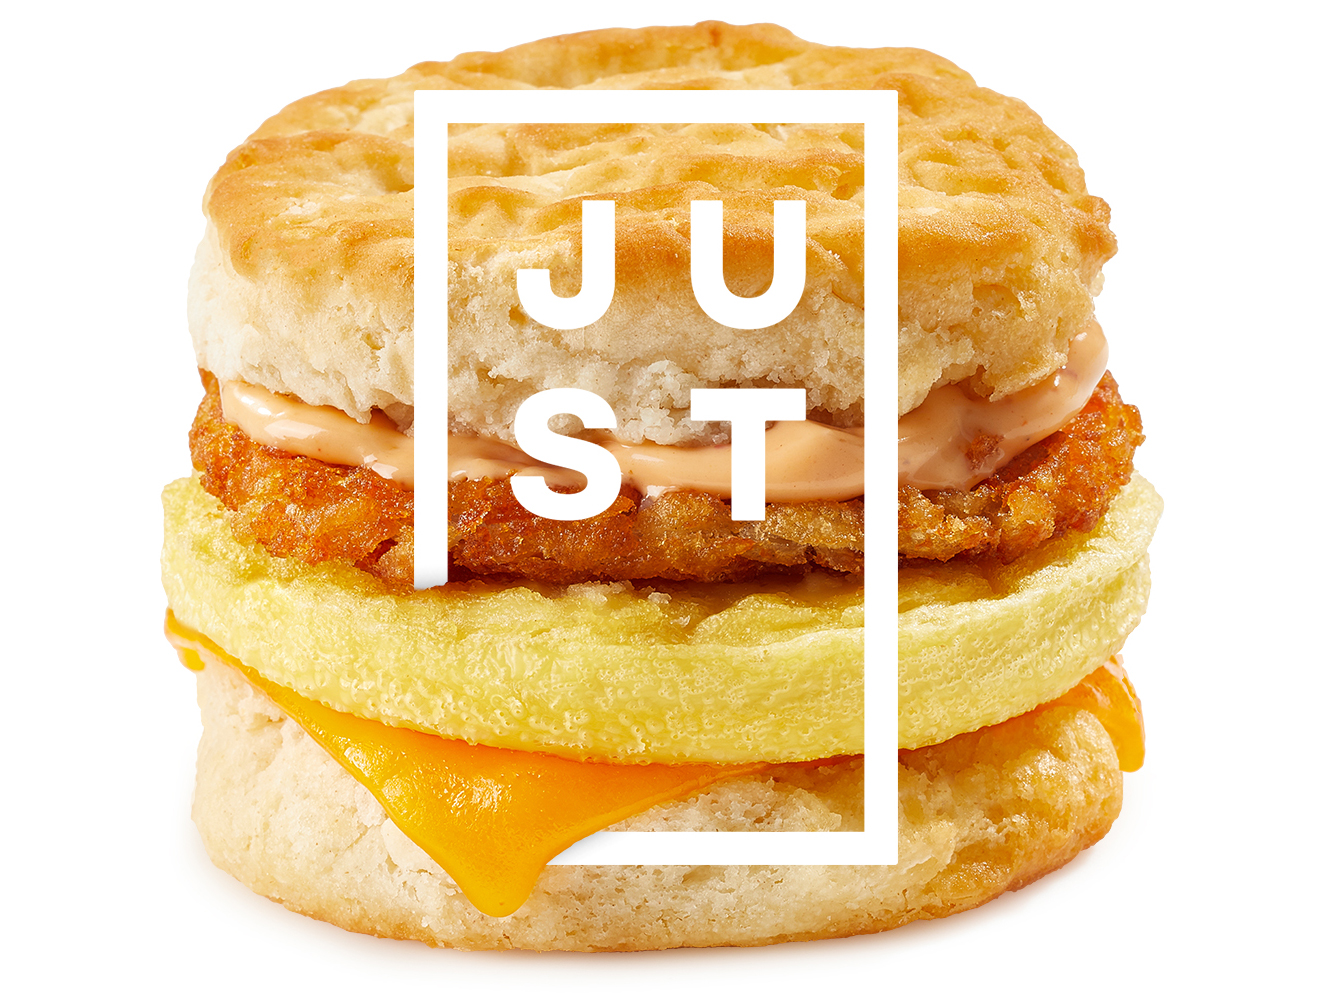 Tim Hortons Will Add Vegan 'Just Egg' to Breakfast Sandwiches